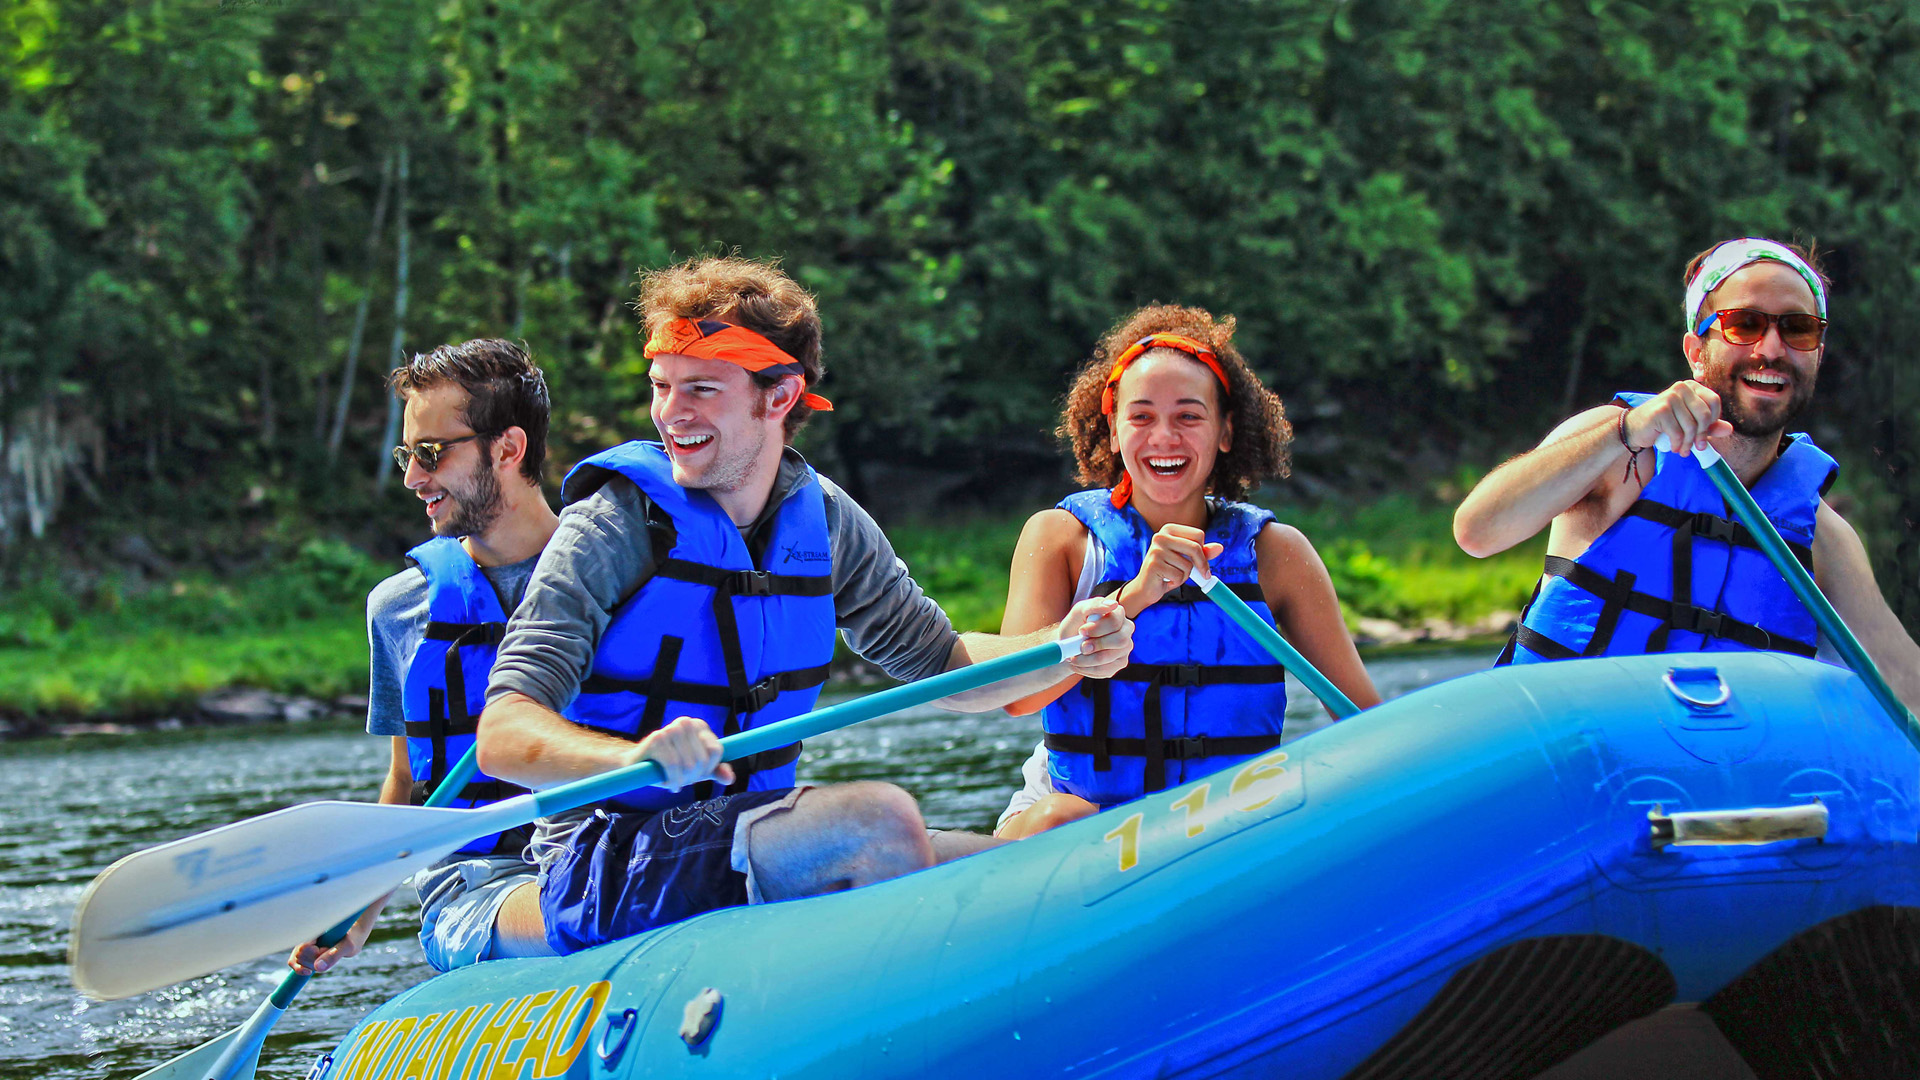 group of 4 friends on raft Indian Head Canoeing Rafting Kayaking Tubing Delaware River